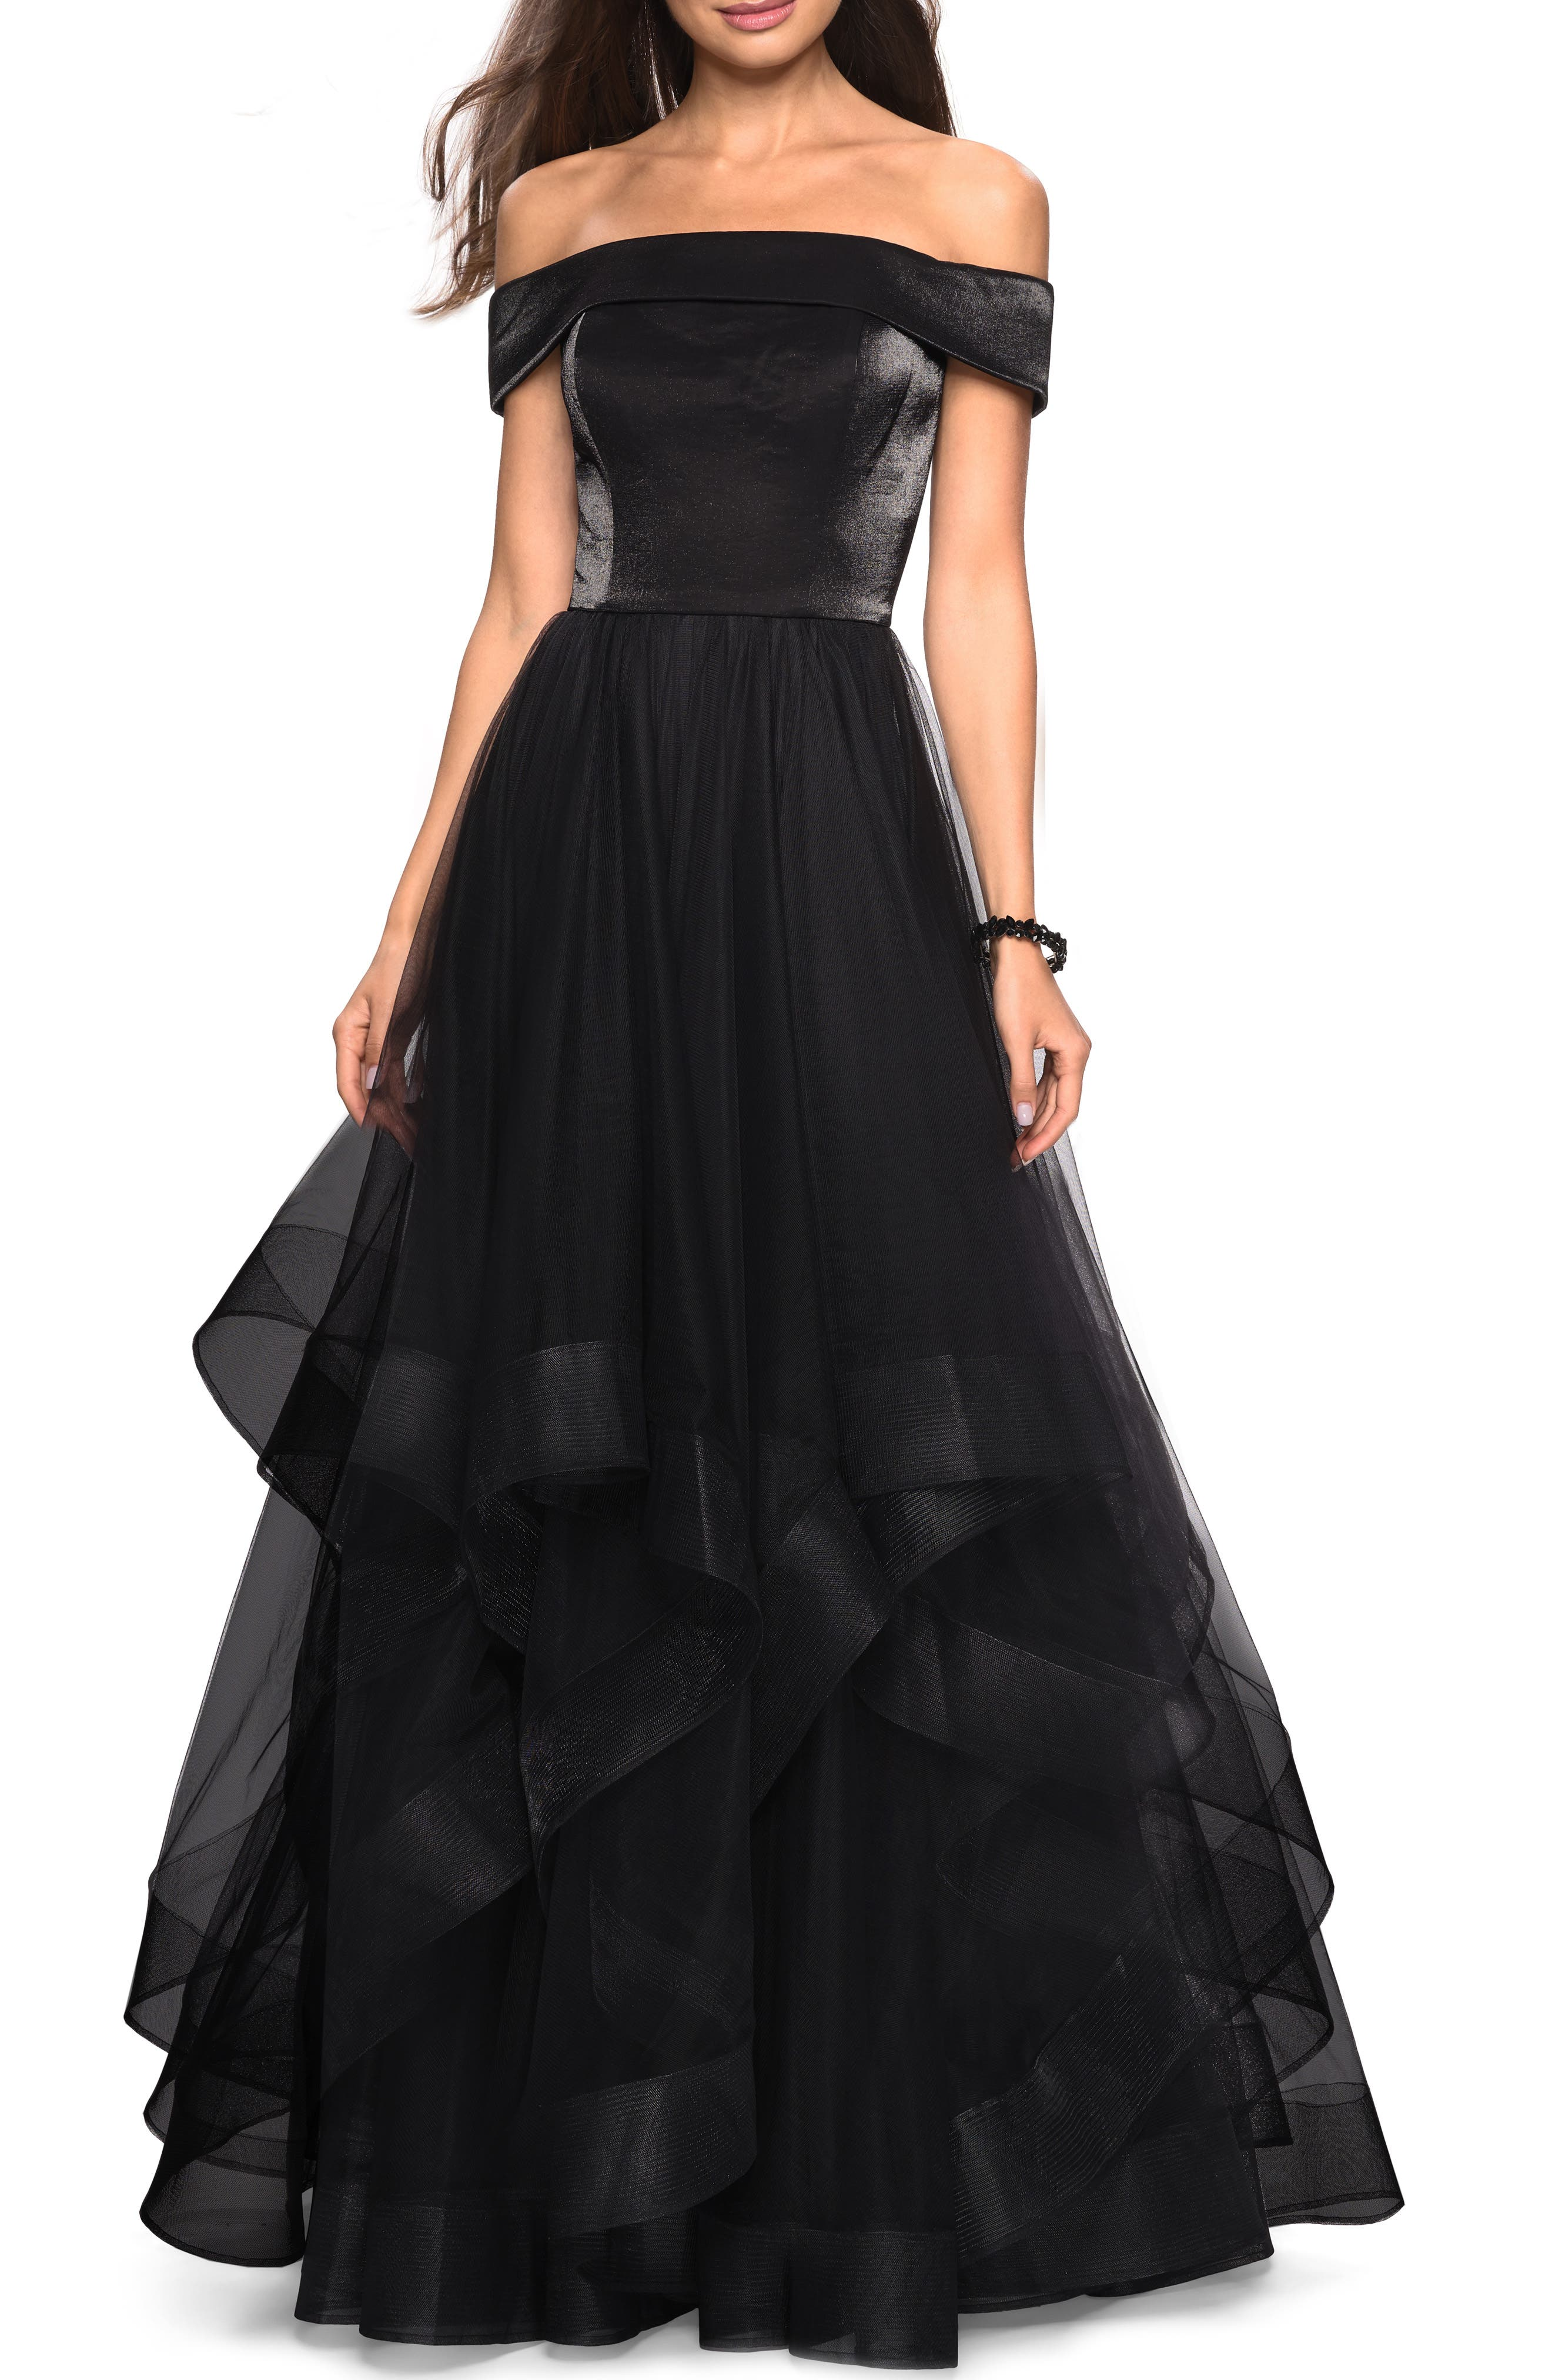 La Femme Off The Shoulder Evening Dress, Black